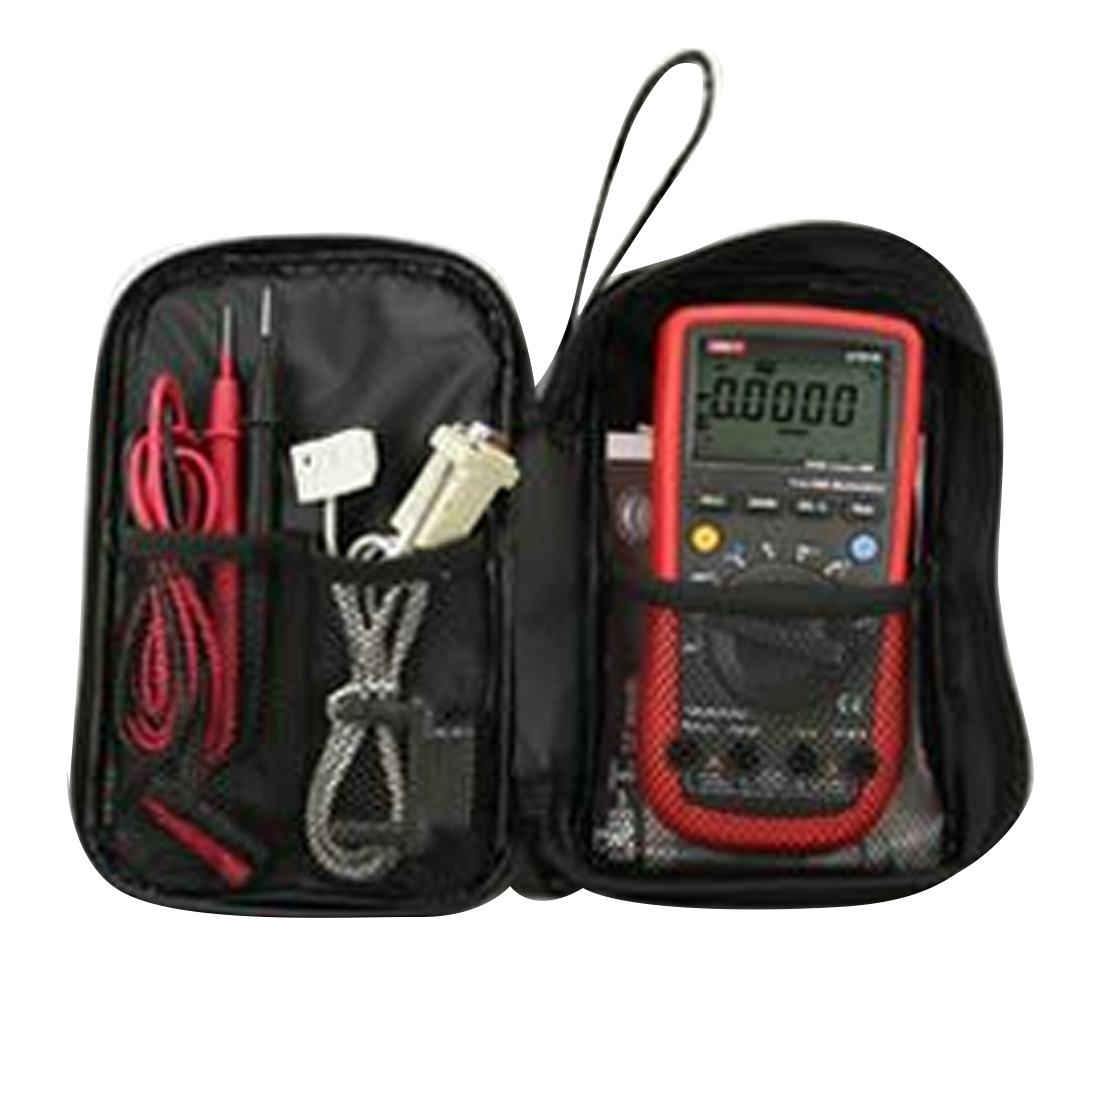 Durable  Waterproof Tools Bag Multimeter Black Canvas Bag For UT61 Series Digital Multimeter Cloth 20*12*4cm